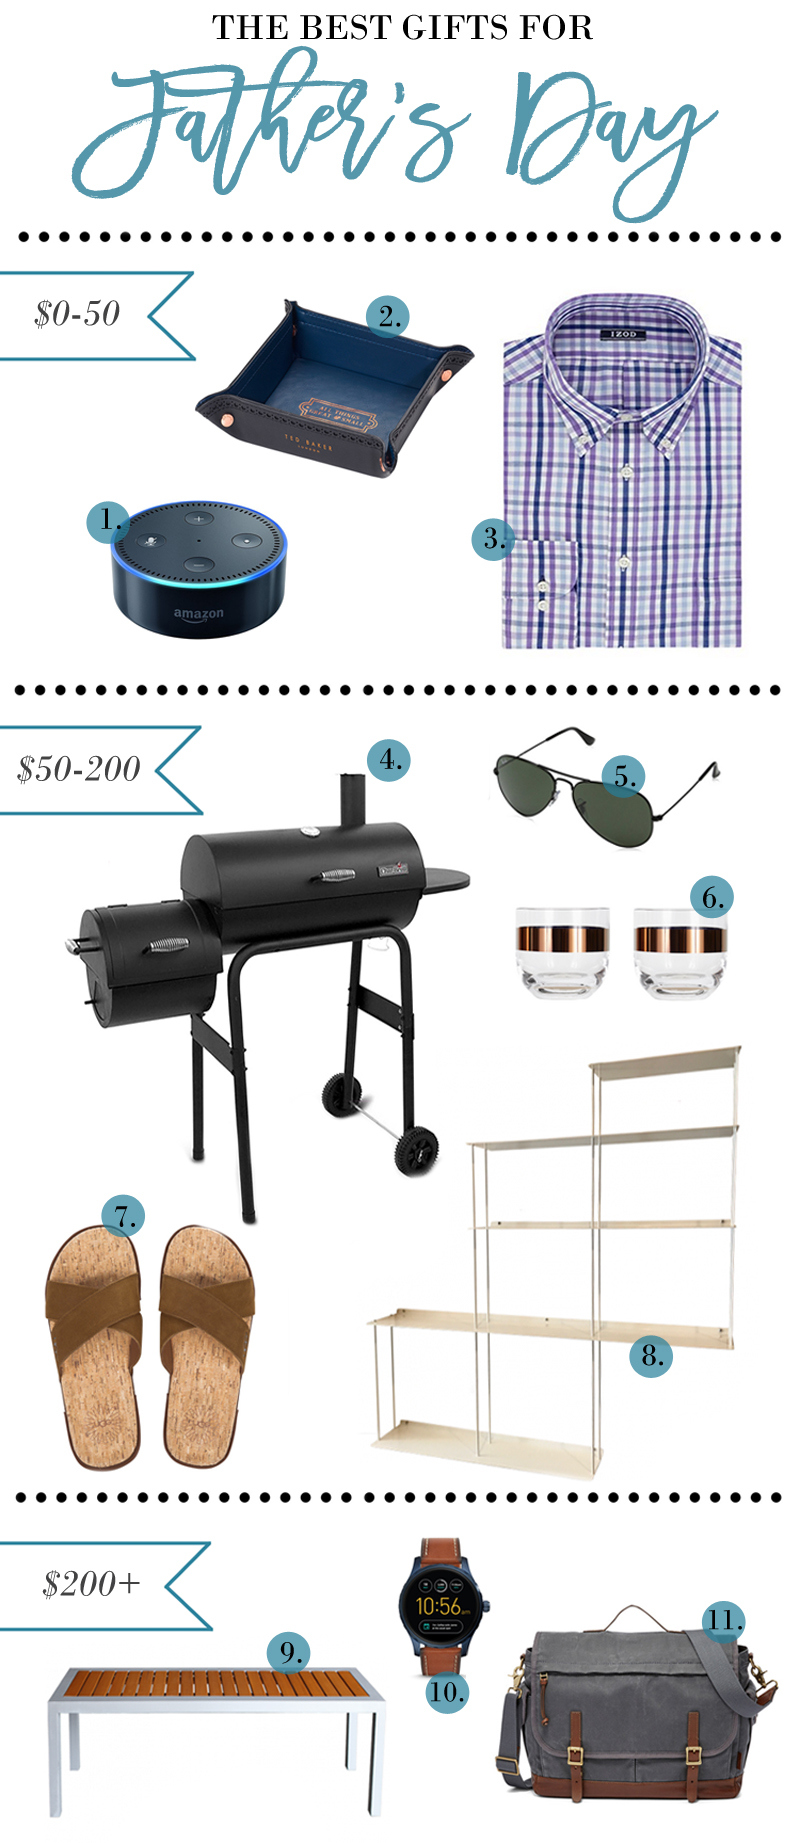 The Ultimate Fathers Day Gifts - Budget Friendly Options! by Utah blogger Sandy A La Mode